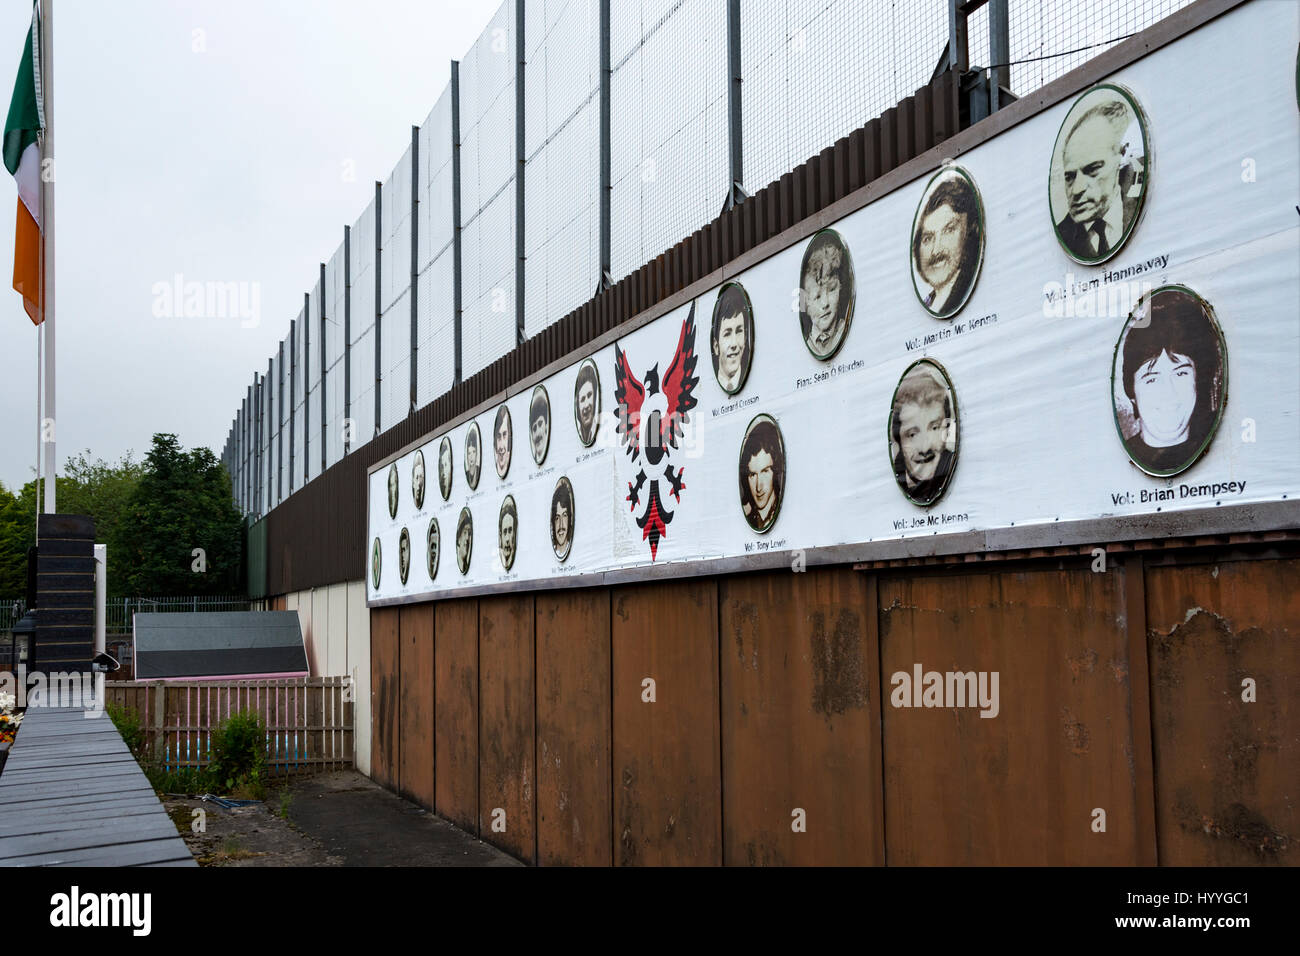 Memorial plaques on the Peace Wall, Bombay St., Belfast, County Antrim, Northern Ireland, UK - Stock Image